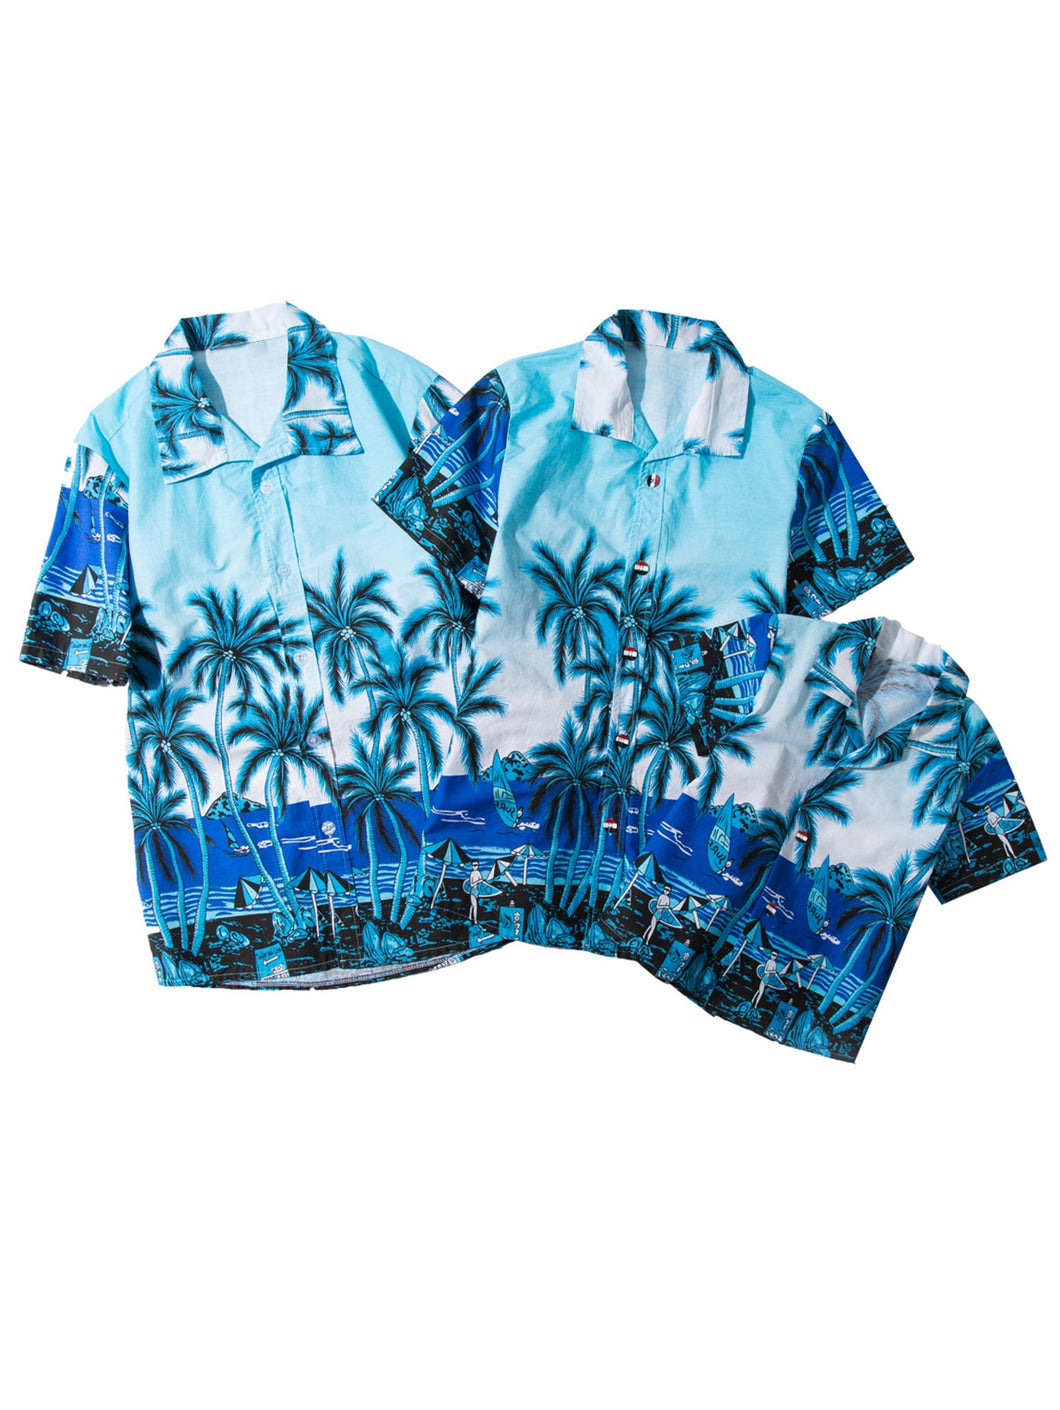 Tropical Print Matching Family Shirt